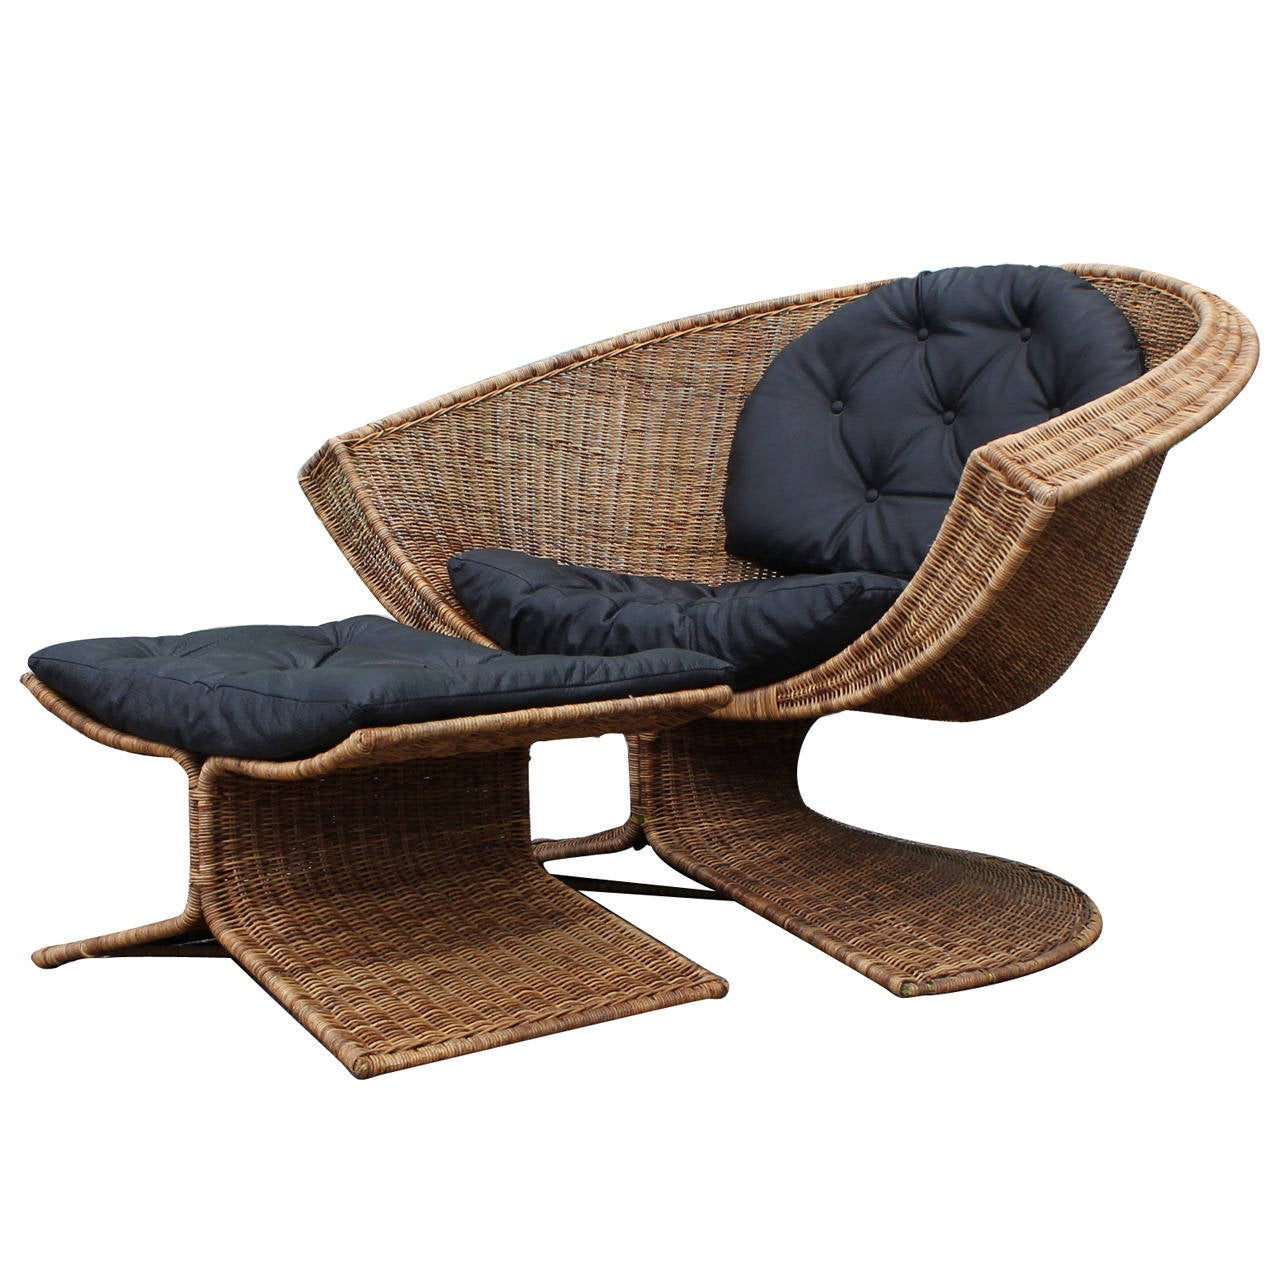 Lotus Chair and Ottoman by Miller Yee Fong for Tropi-Cal at 1stdibs